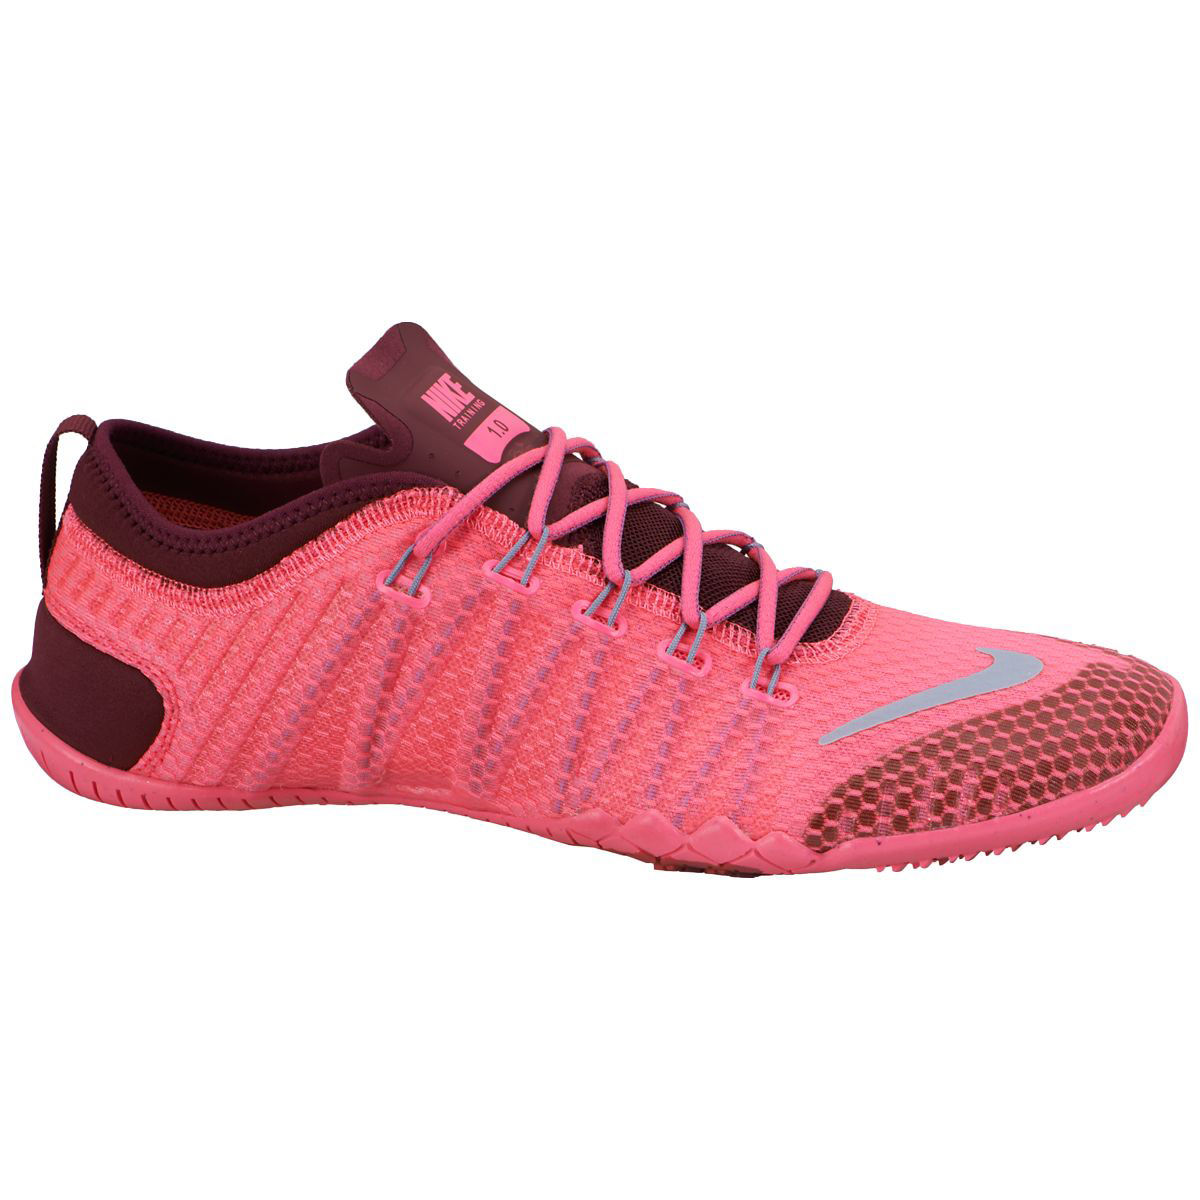 Nike Women's Free 1.0 Cross Bionic Shoes - FA14